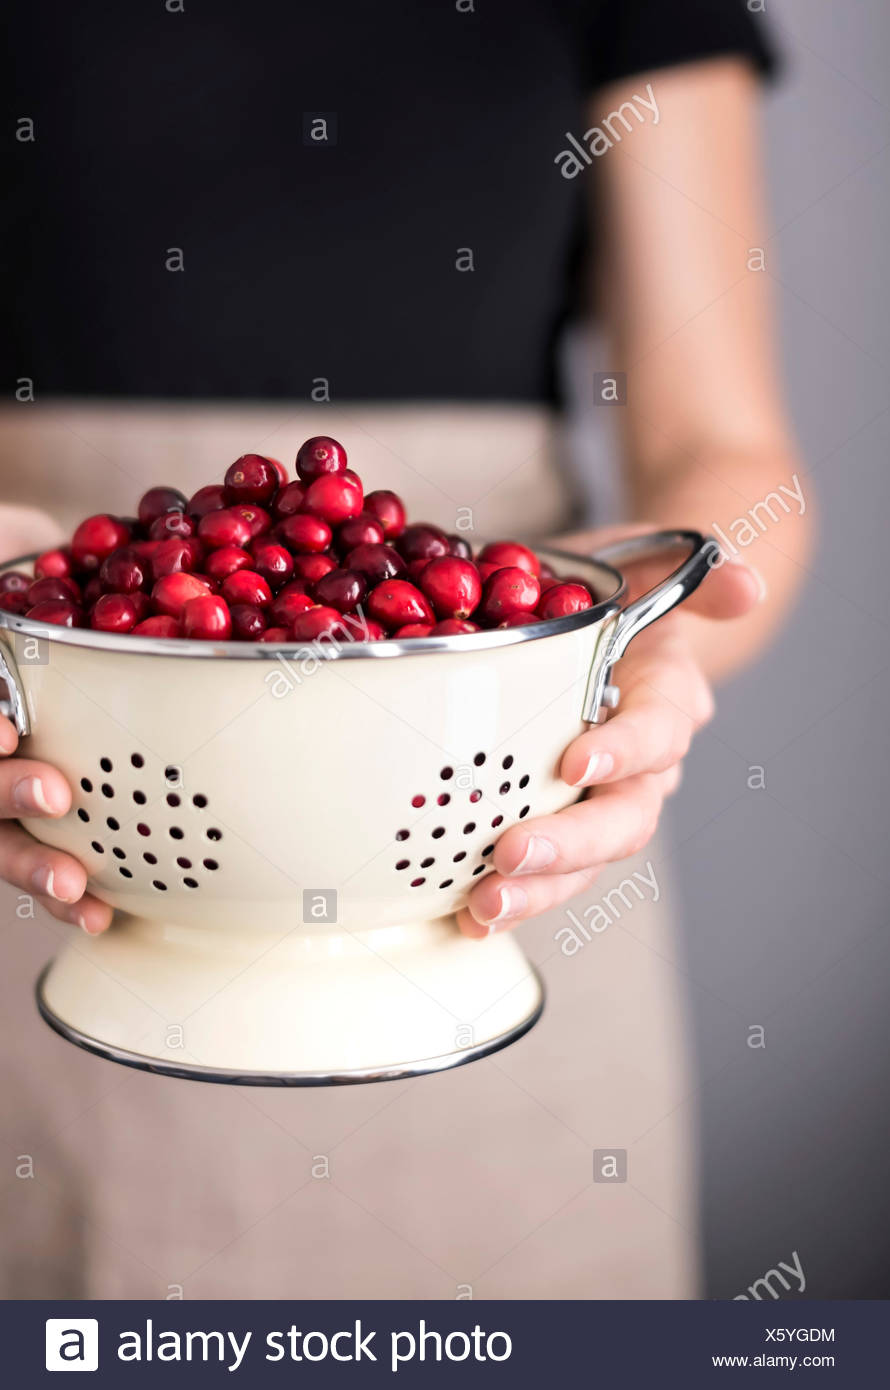 Bright red cranberries in a cream colored strainer being held by a woman in an apron. - Stock Image